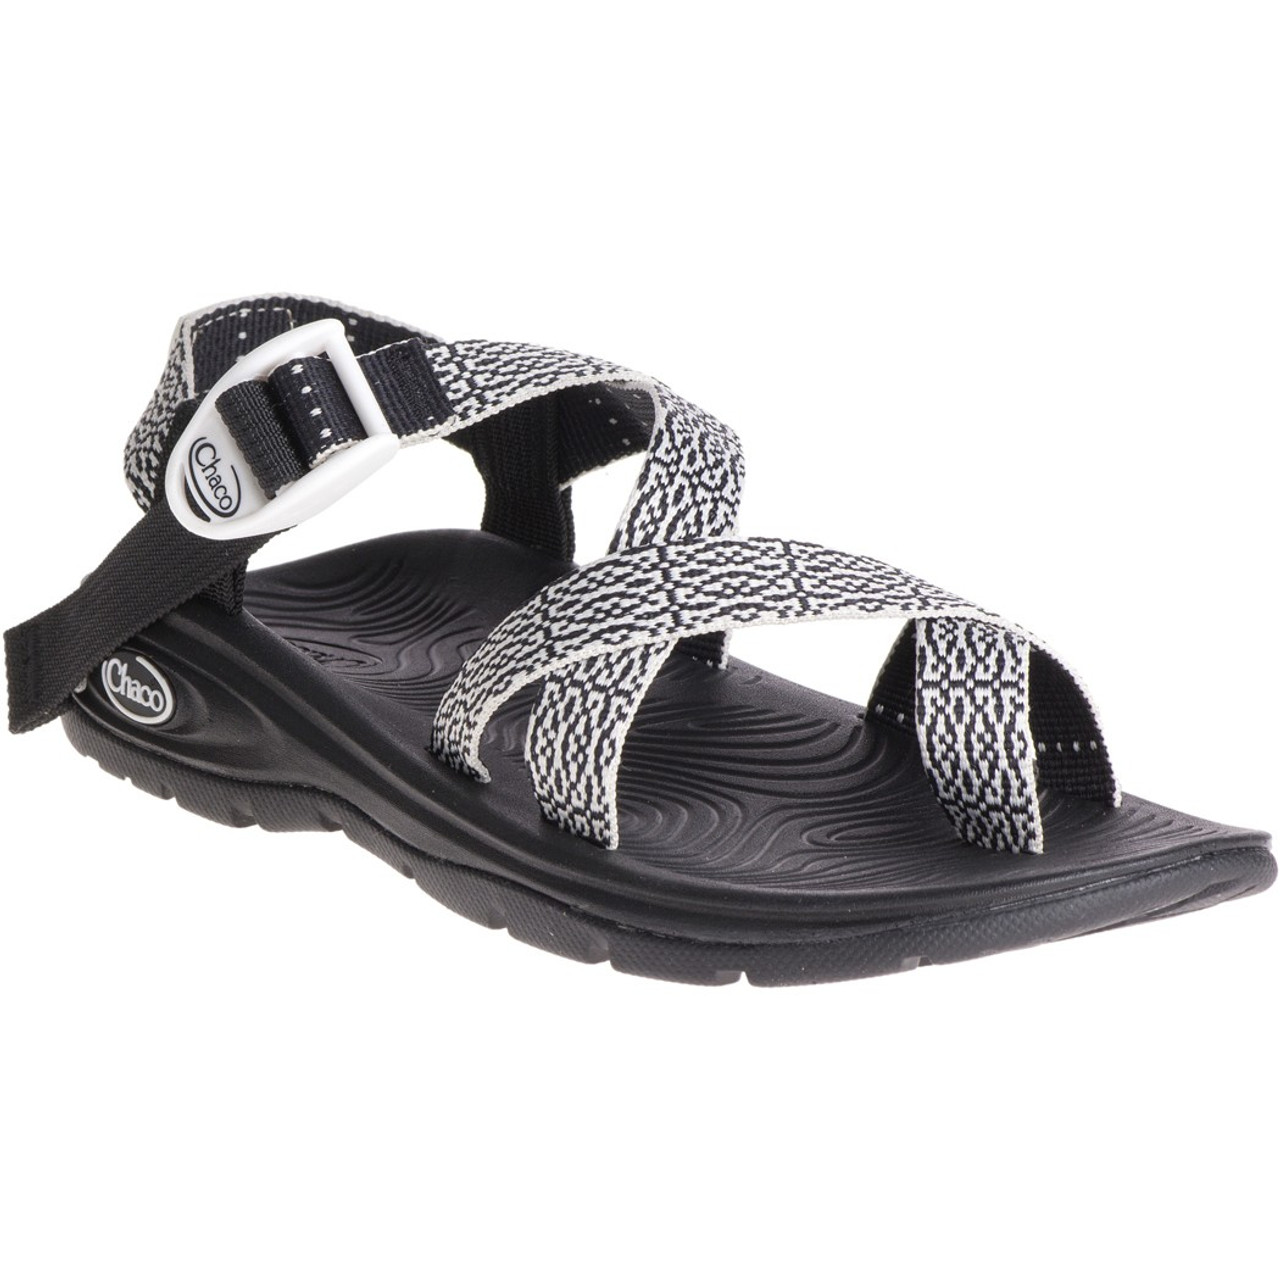 5fa951ff04f9 Chacos Women s Sandals - Z Volv 2 - Verdant Black - Surf and Dirt